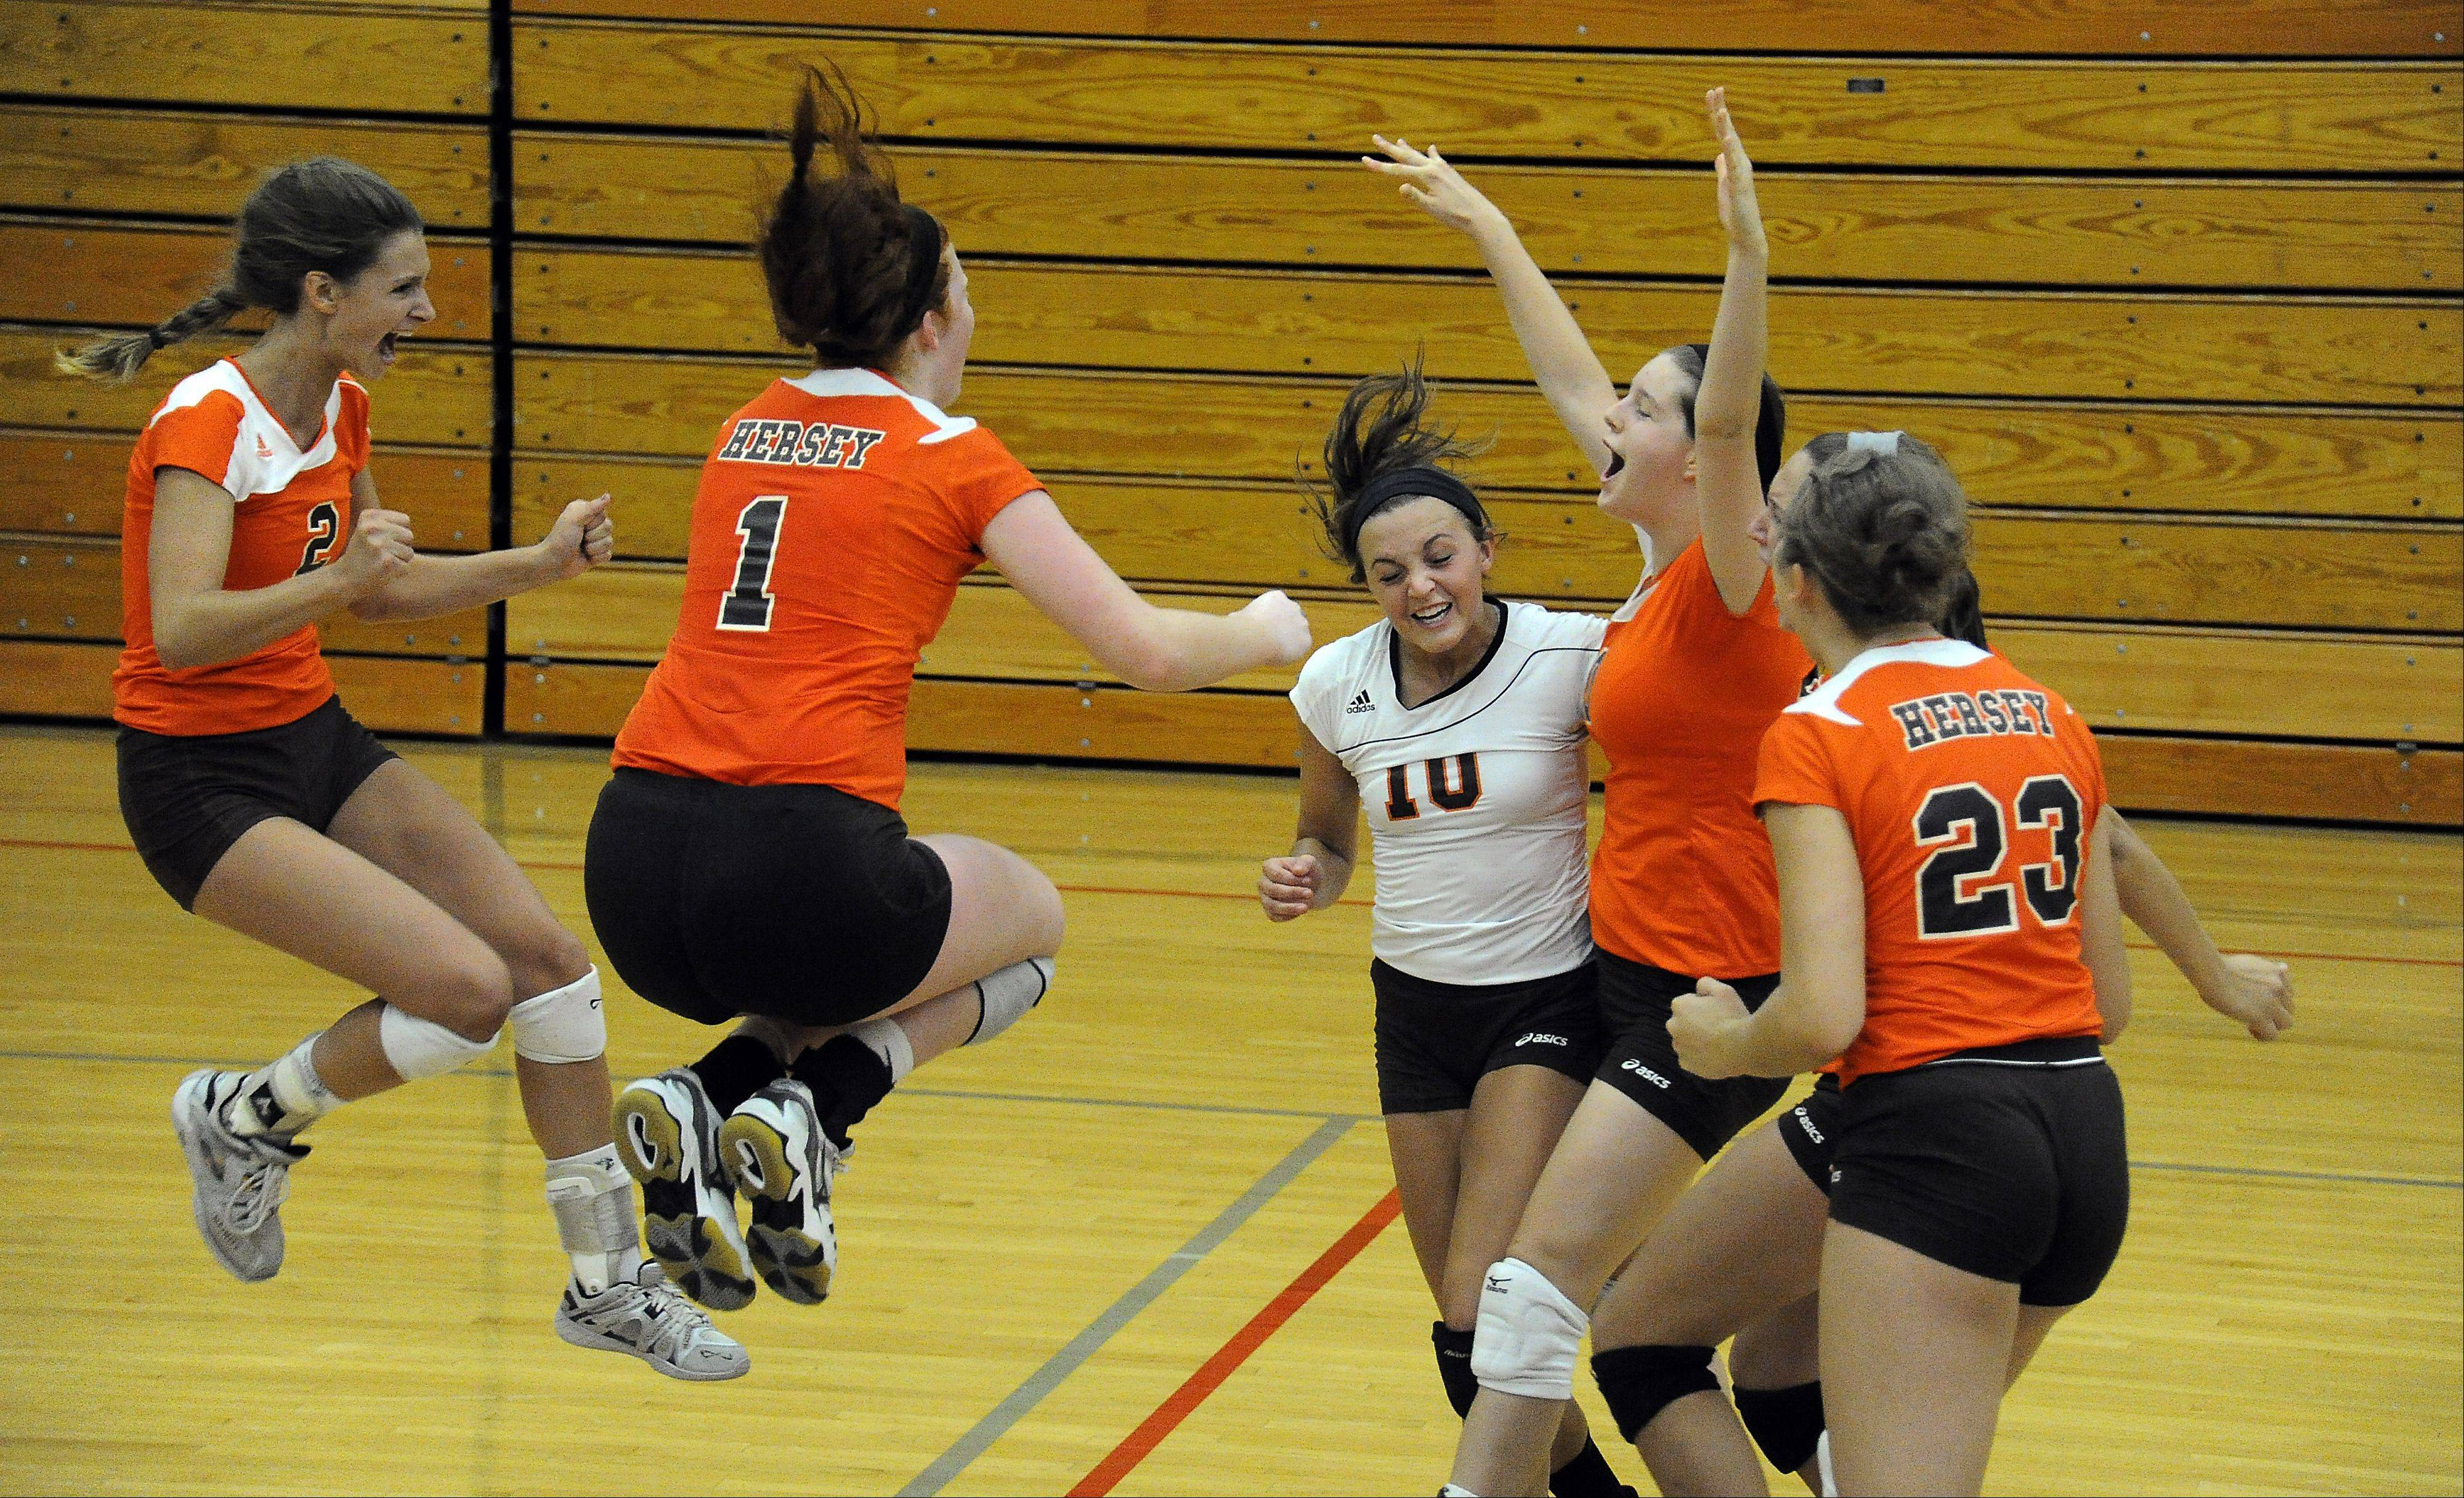 Hersey's Megan Solans, Abby Fesl and Taylor Hill celebrate the final point and the win in Game 3 against Waukesha Catholic Saturday at the Jacobs tournament.